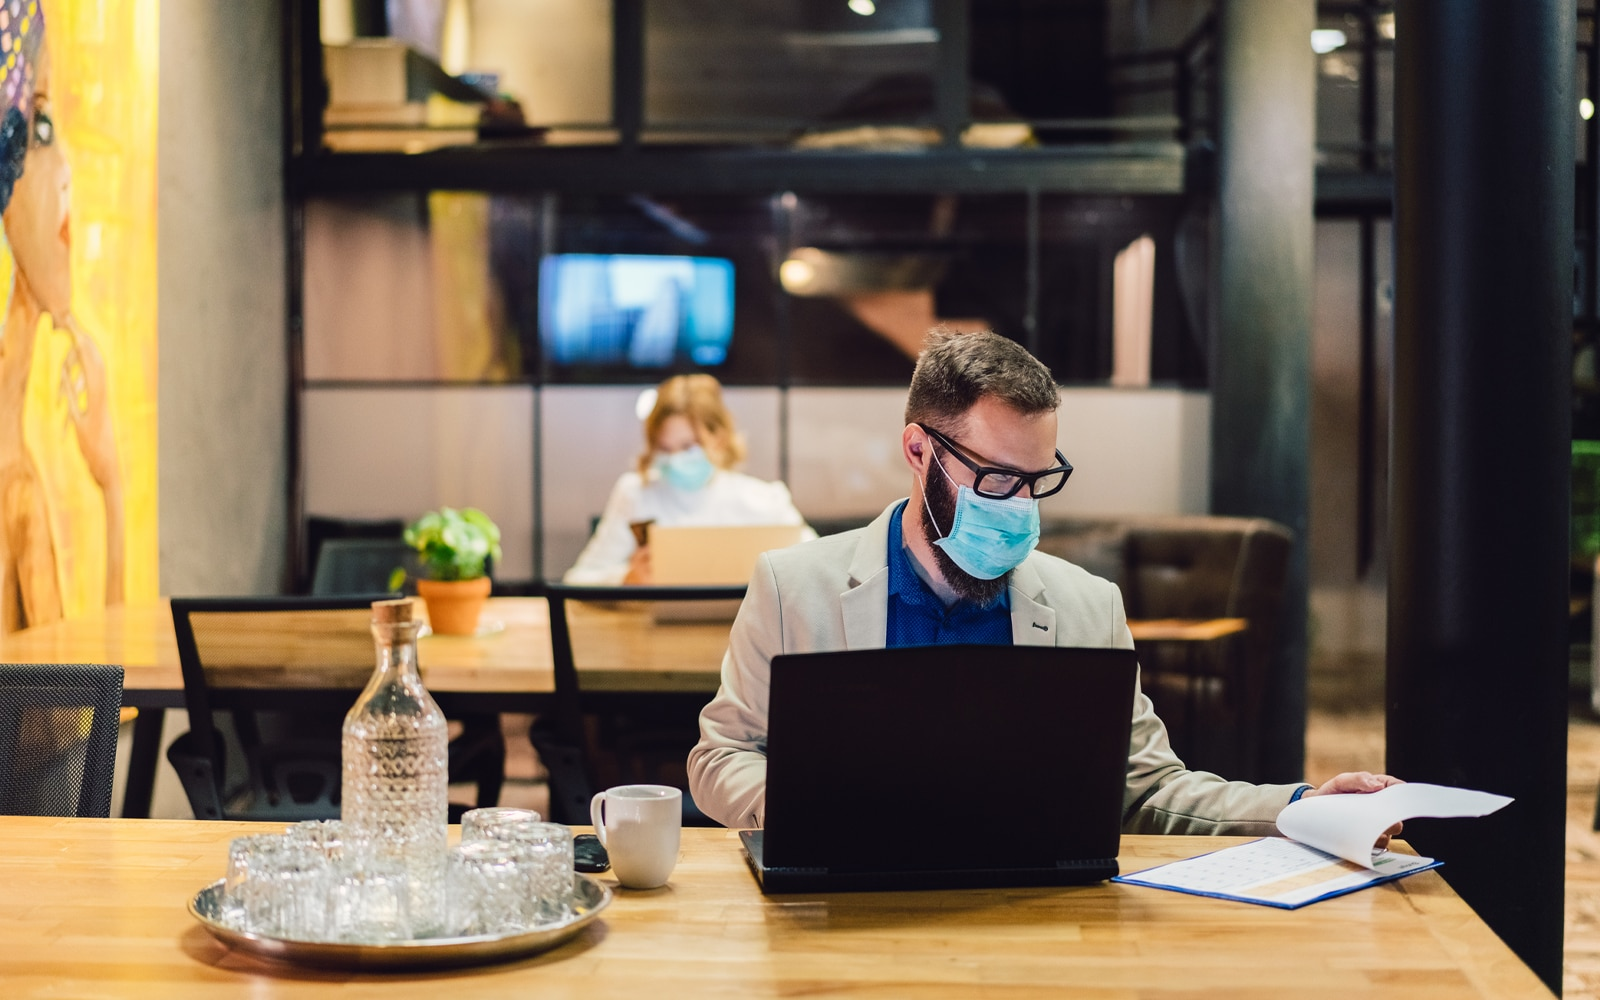 A man working at a desk, with a laptop, notepad and cup of coffee in front of him. He is wearing a facemask. In the background you can see a woman sat far away looking at a phone, complying with social distancing.